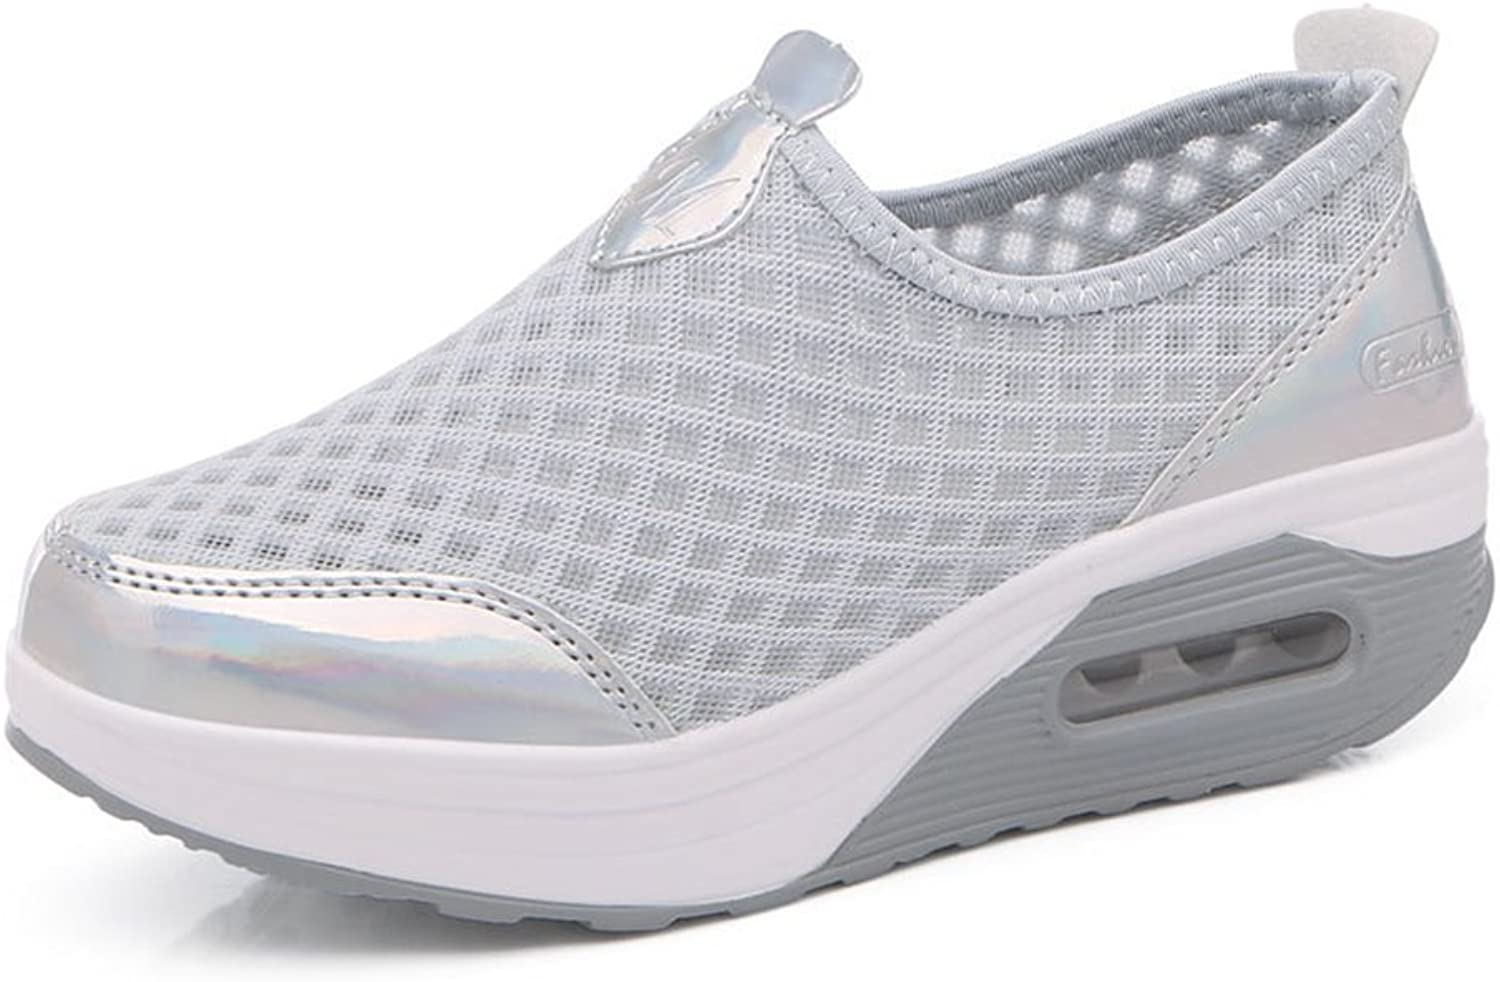 Believed Women's Athletic shoes Casual Walking Sneakers - Breathable Running shoes